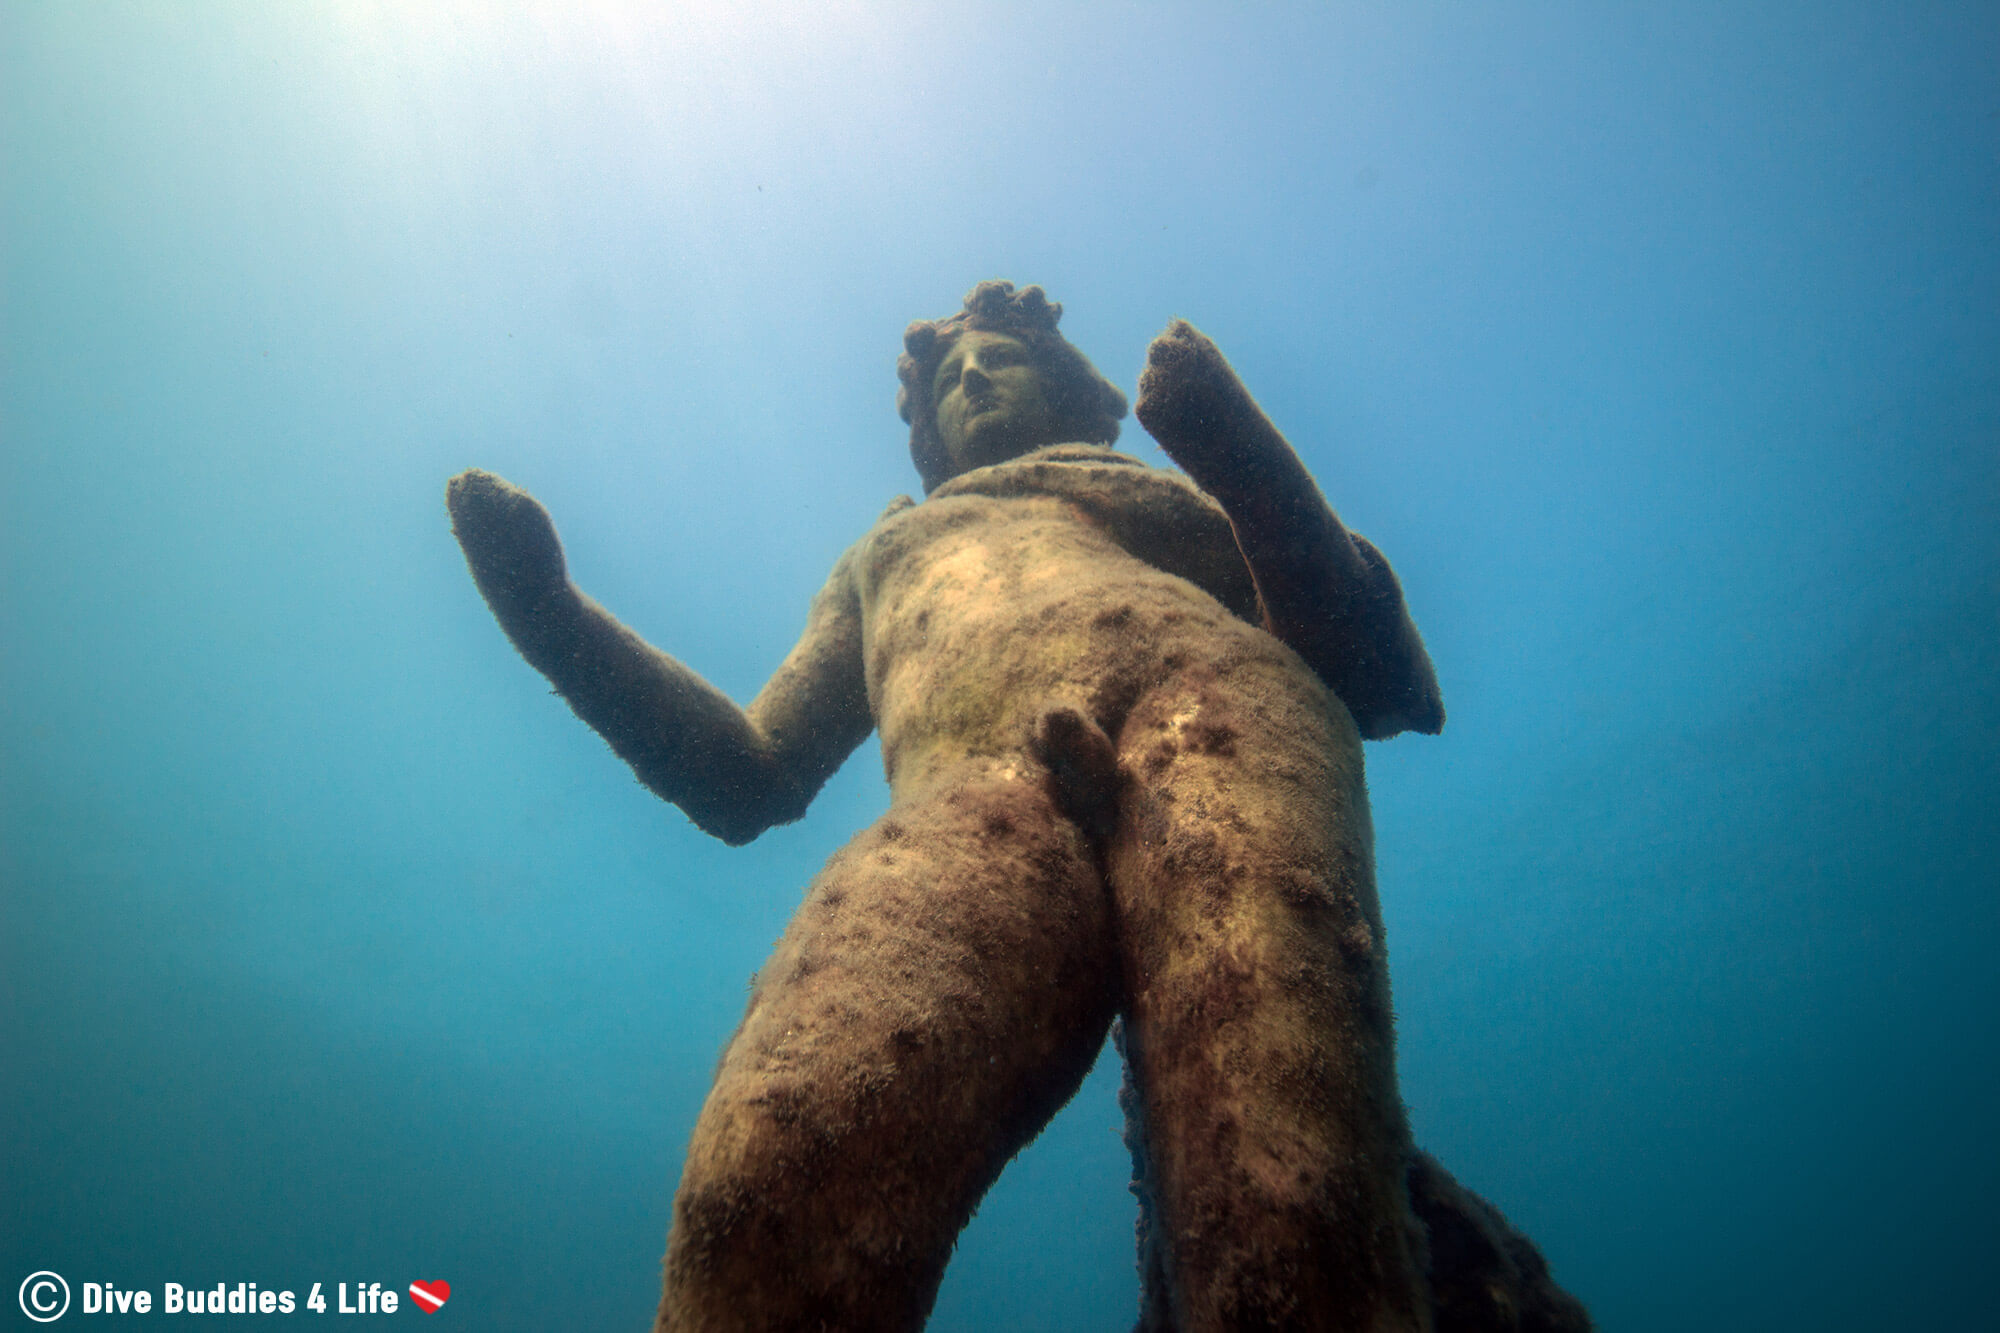 A View Of A Nude Roman Statue Submerged In The Waters In The Gulf Of Naples At Baiae, Italy, Europe